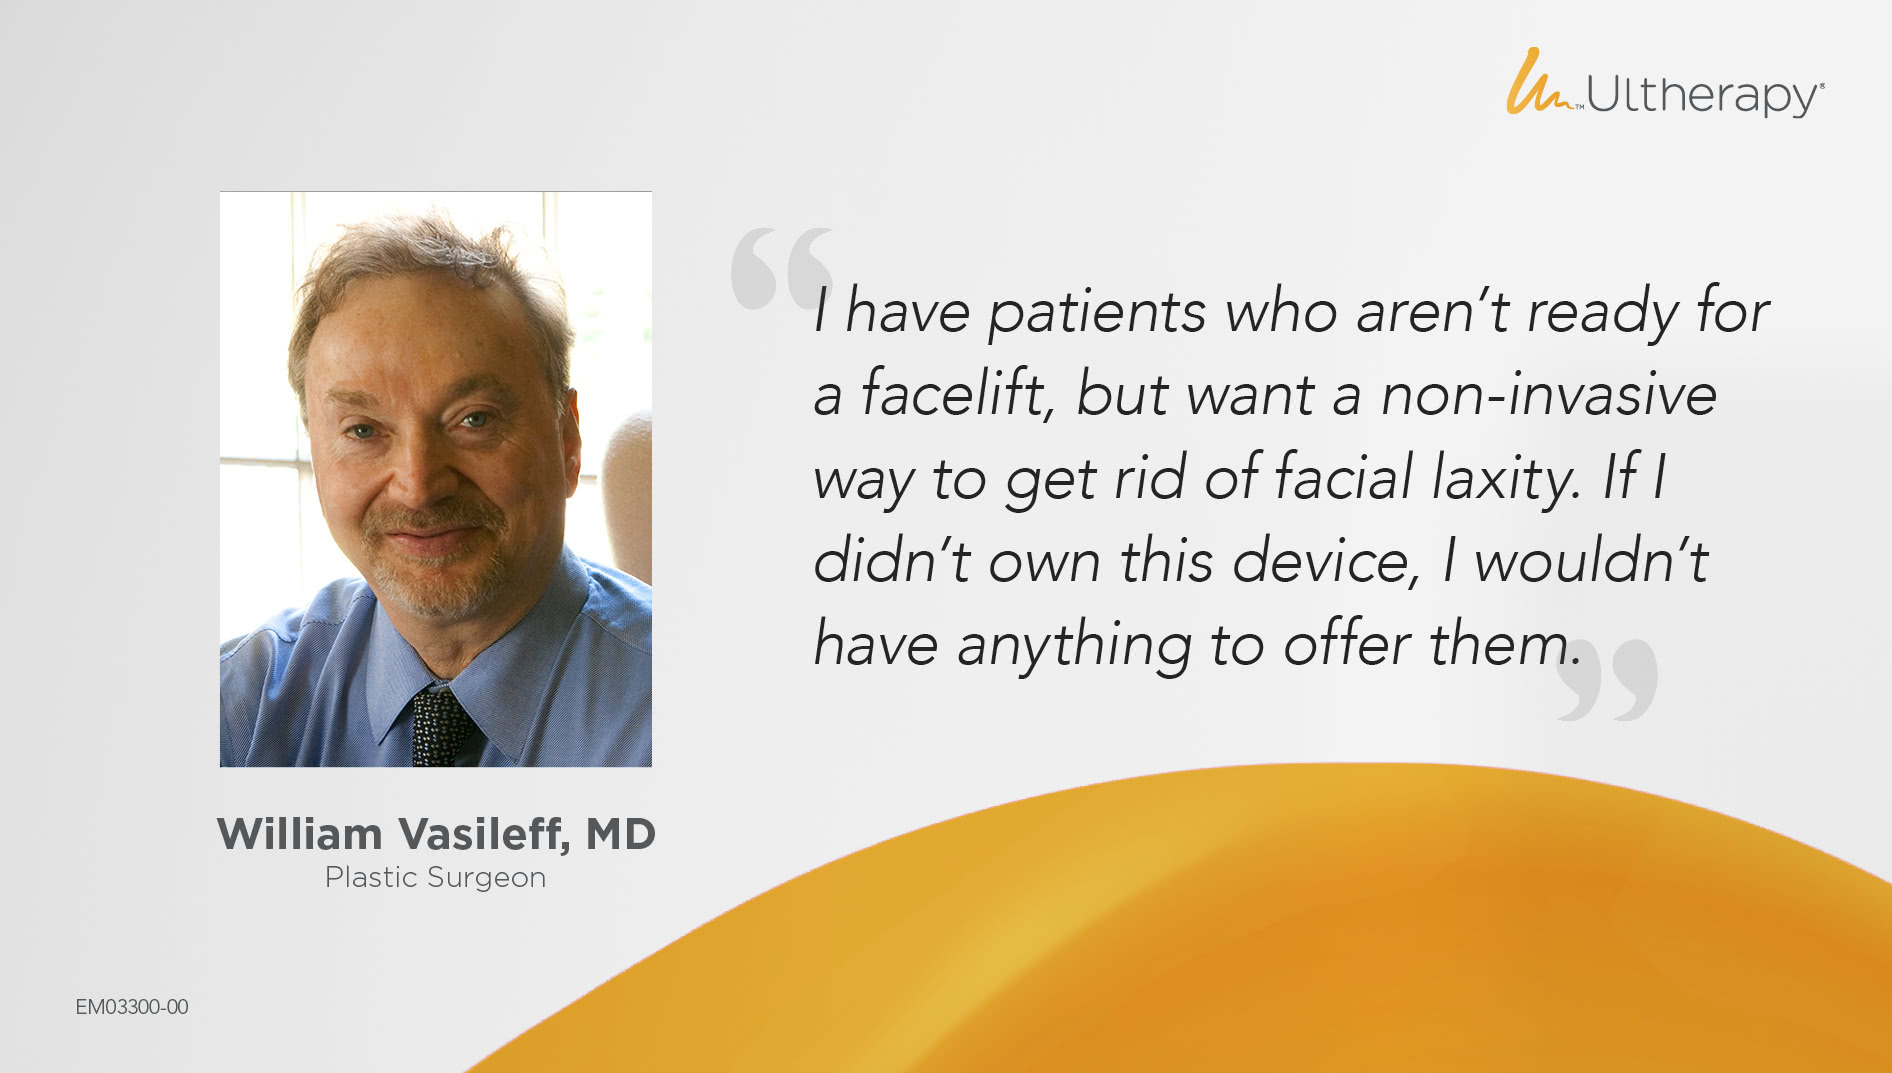 William Vasileff, M.D.